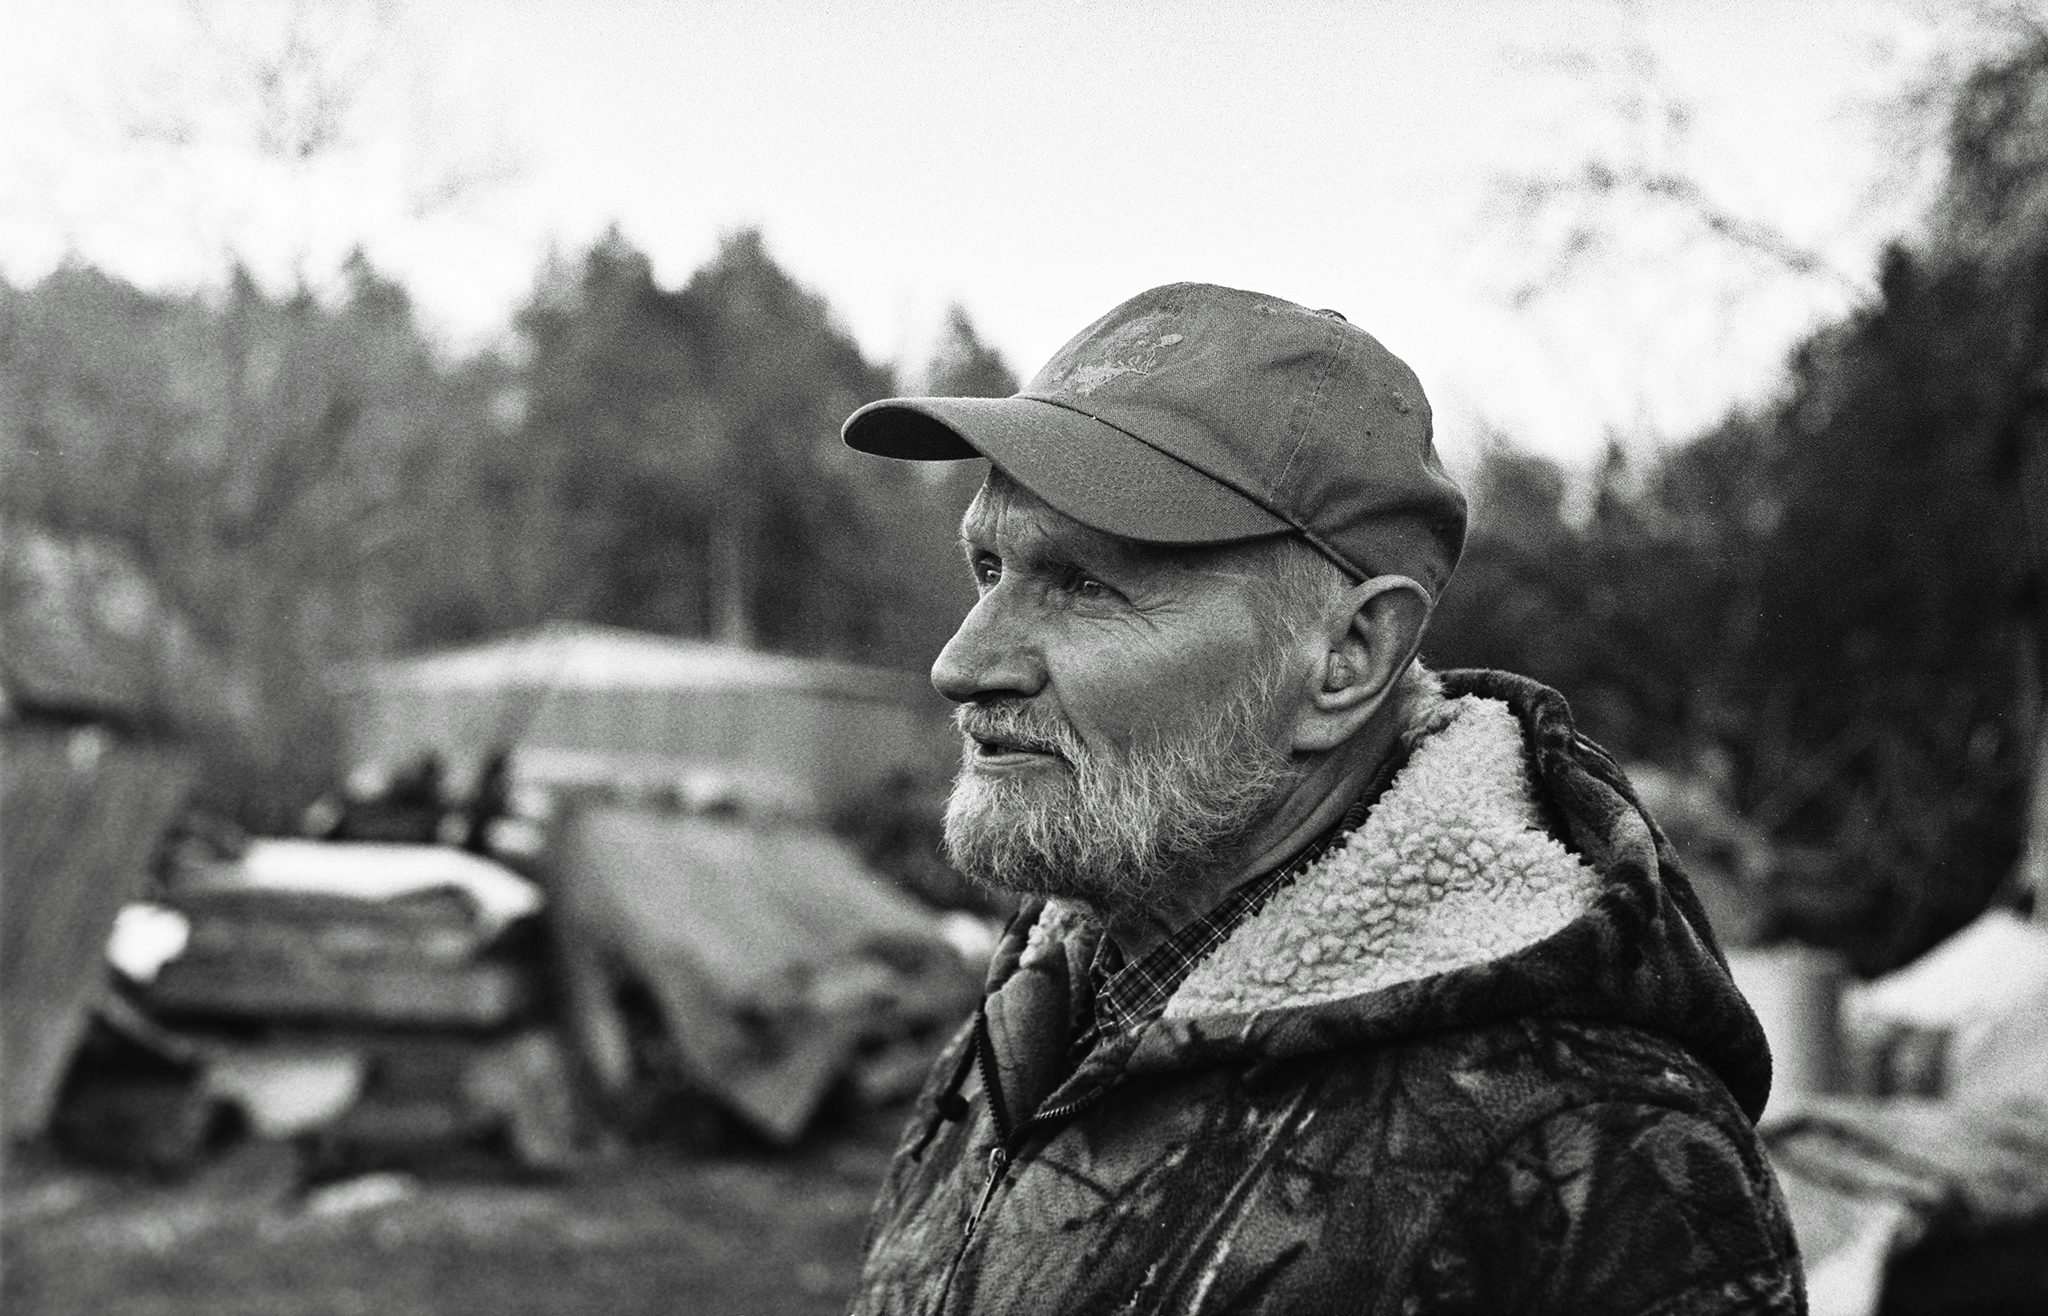 @SBH2O My dad. Shots taken with #leicam3 and @ILFORDPhoto HP5. Scanned with Fuji X-T2. #ilfordphoto #fridayfavourites #filmfathers